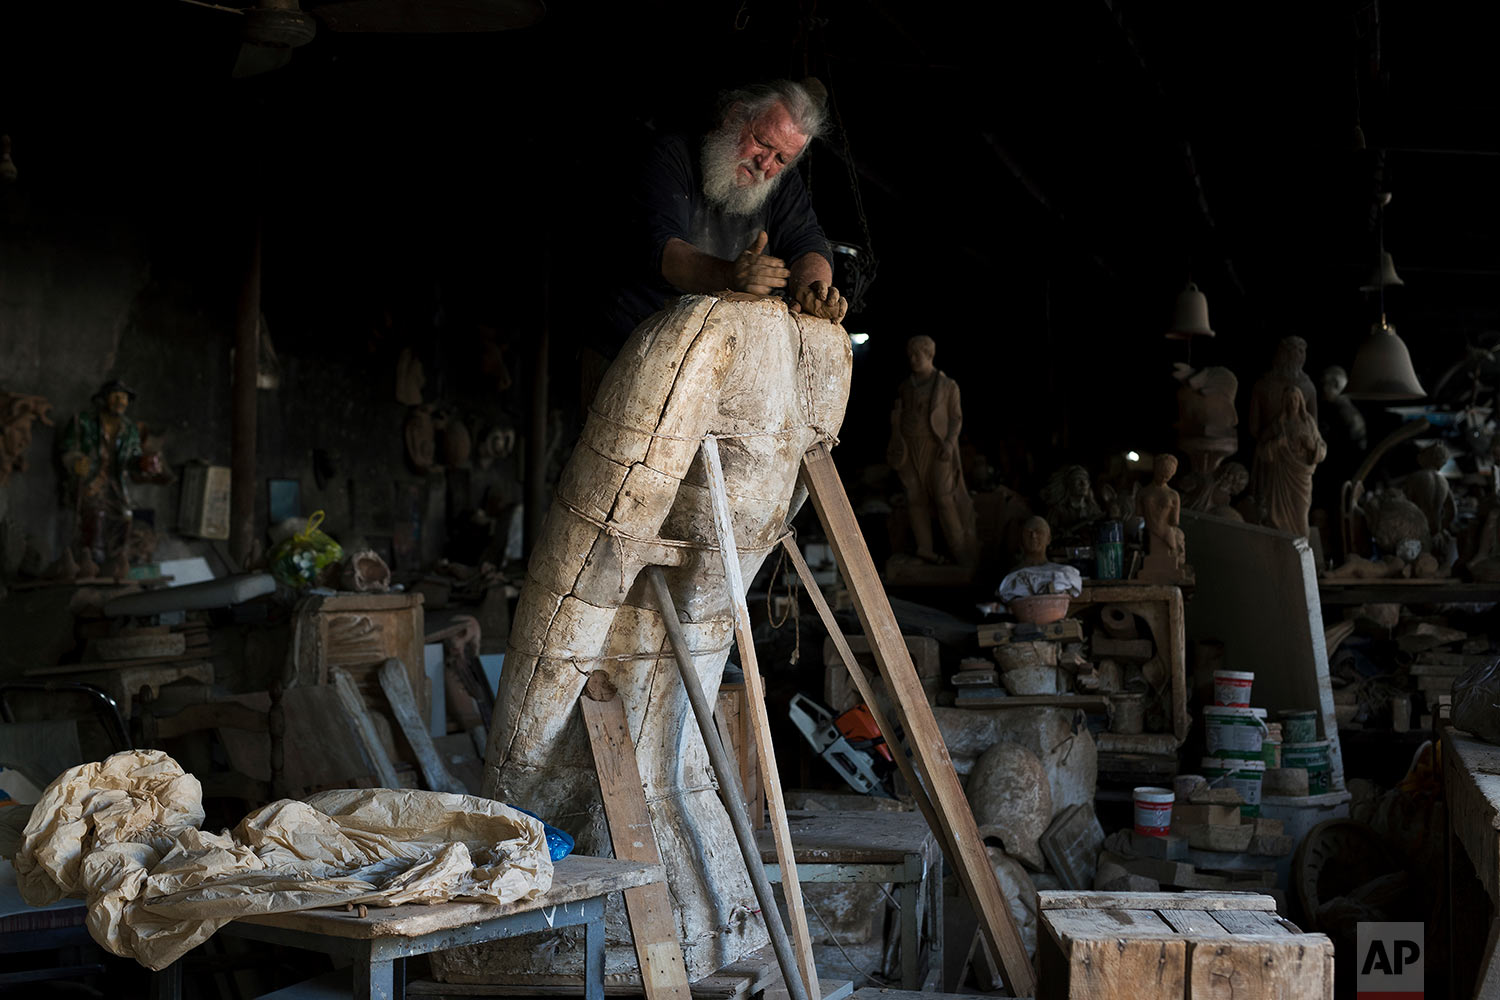 In this Thursday, Oct. 19, 2017 photo, sculptor and ceramicist Haralambos Goumas works on a huge terracotta eagle in a mould, at his workshop, in the Egaleo suburb of Athens.  (AP Photo/Petros Giannakouris)